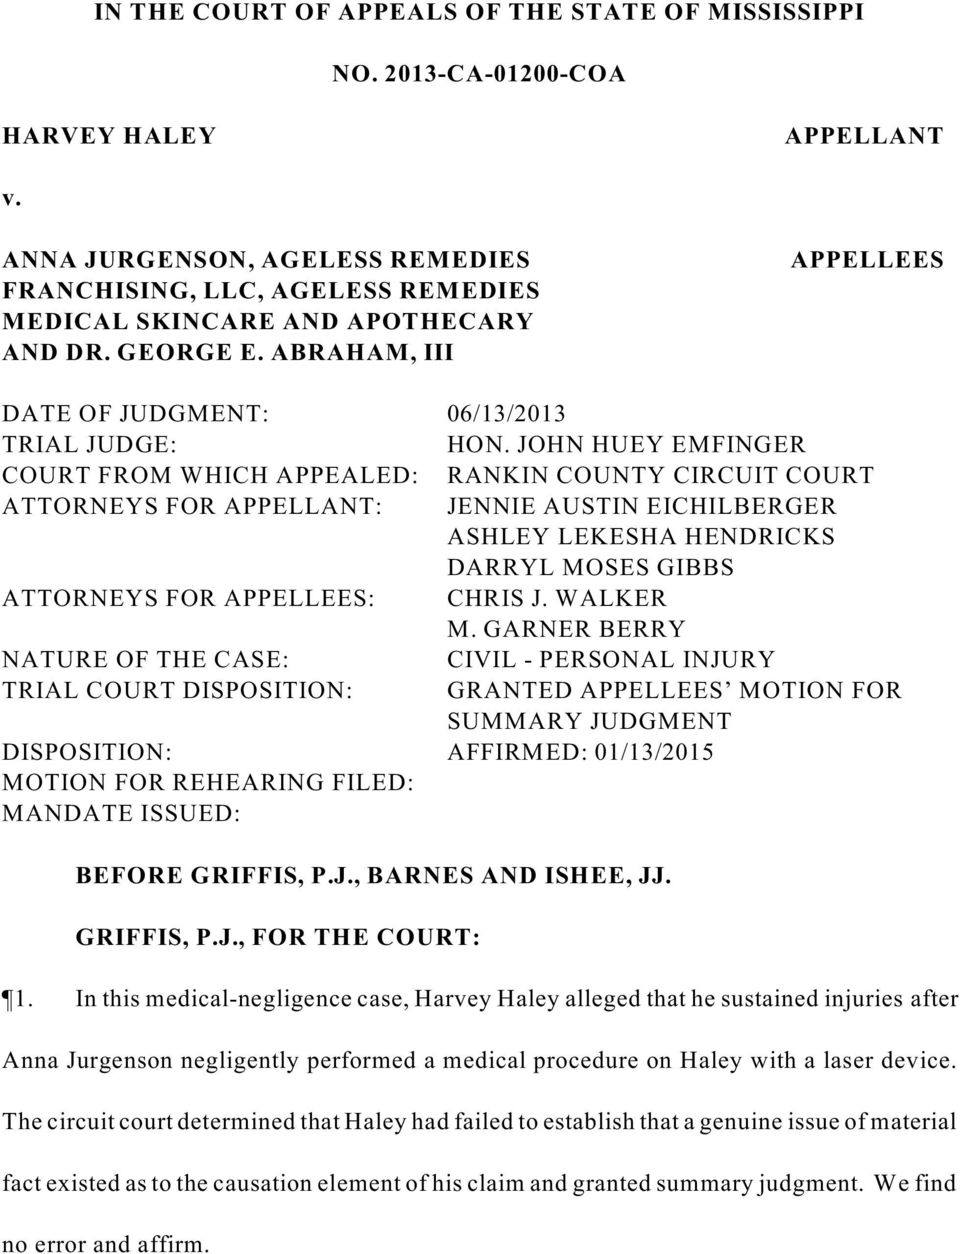 JOHN HUEY EMFINGER COURT FROM WHICH APPEALED: RANKIN COUNTY CIRCUIT COURT ATTORNEYS FOR APPELLANT: JENNIE AUSTIN EICHILBERGER ASHLEY LEKESHA HENDRICKS DARRYL MOSES GIBBS ATTORNEYS FOR APPELLEES: